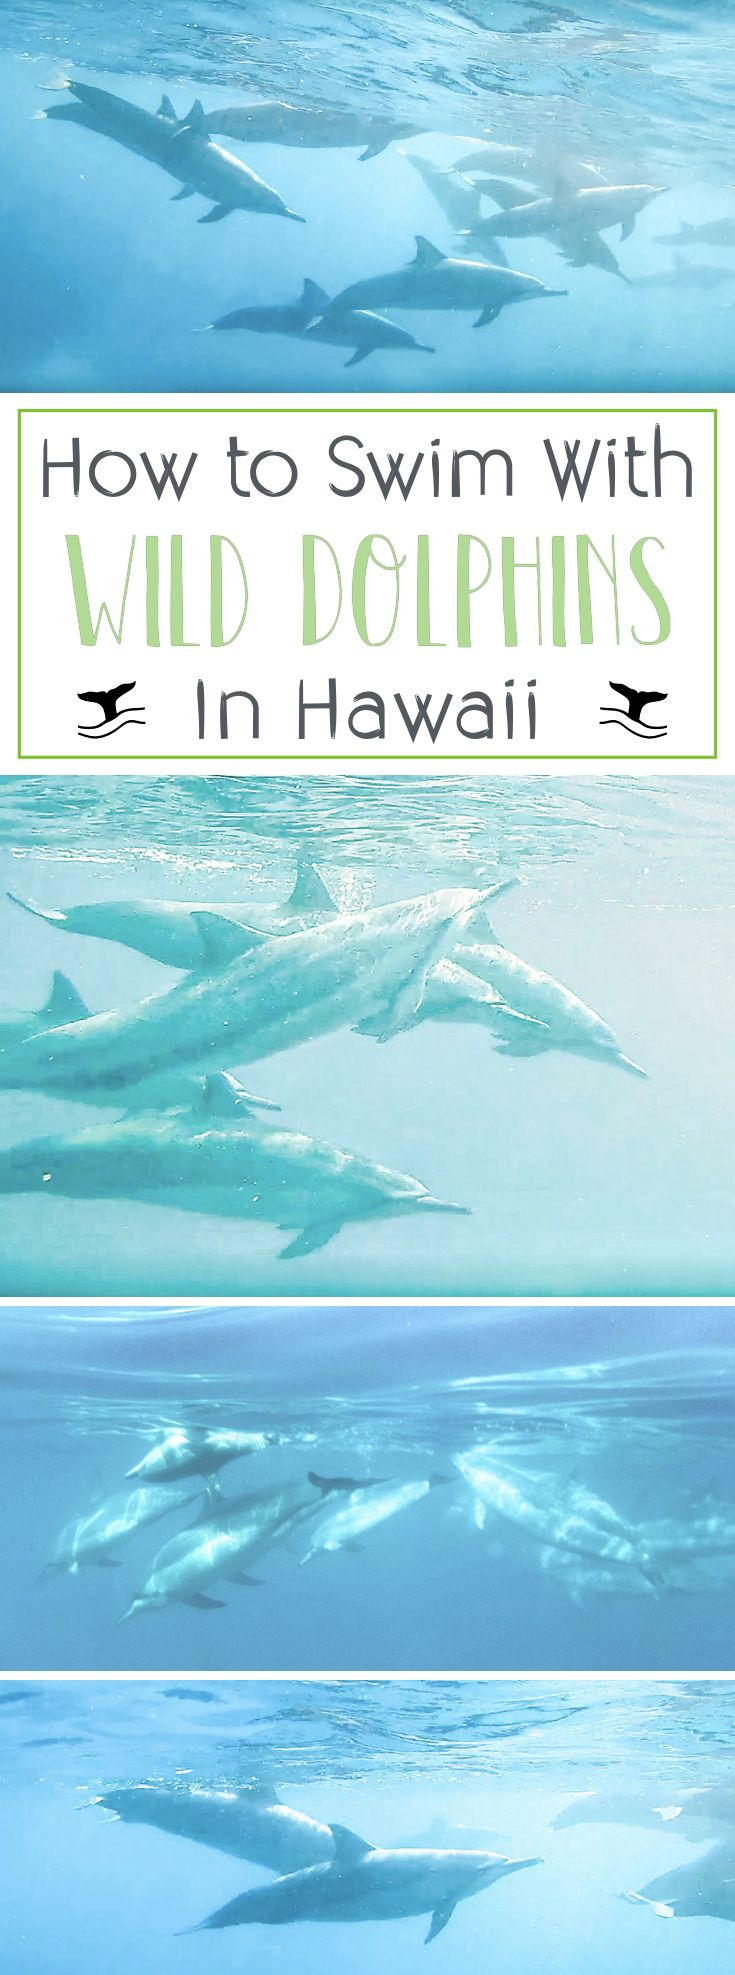 How to Swim with Wild Dolphins on Hawaii's Big Island. Where to find & snorkel with dolphins on Hawaii Island + tips and tricks for a successful adventure.